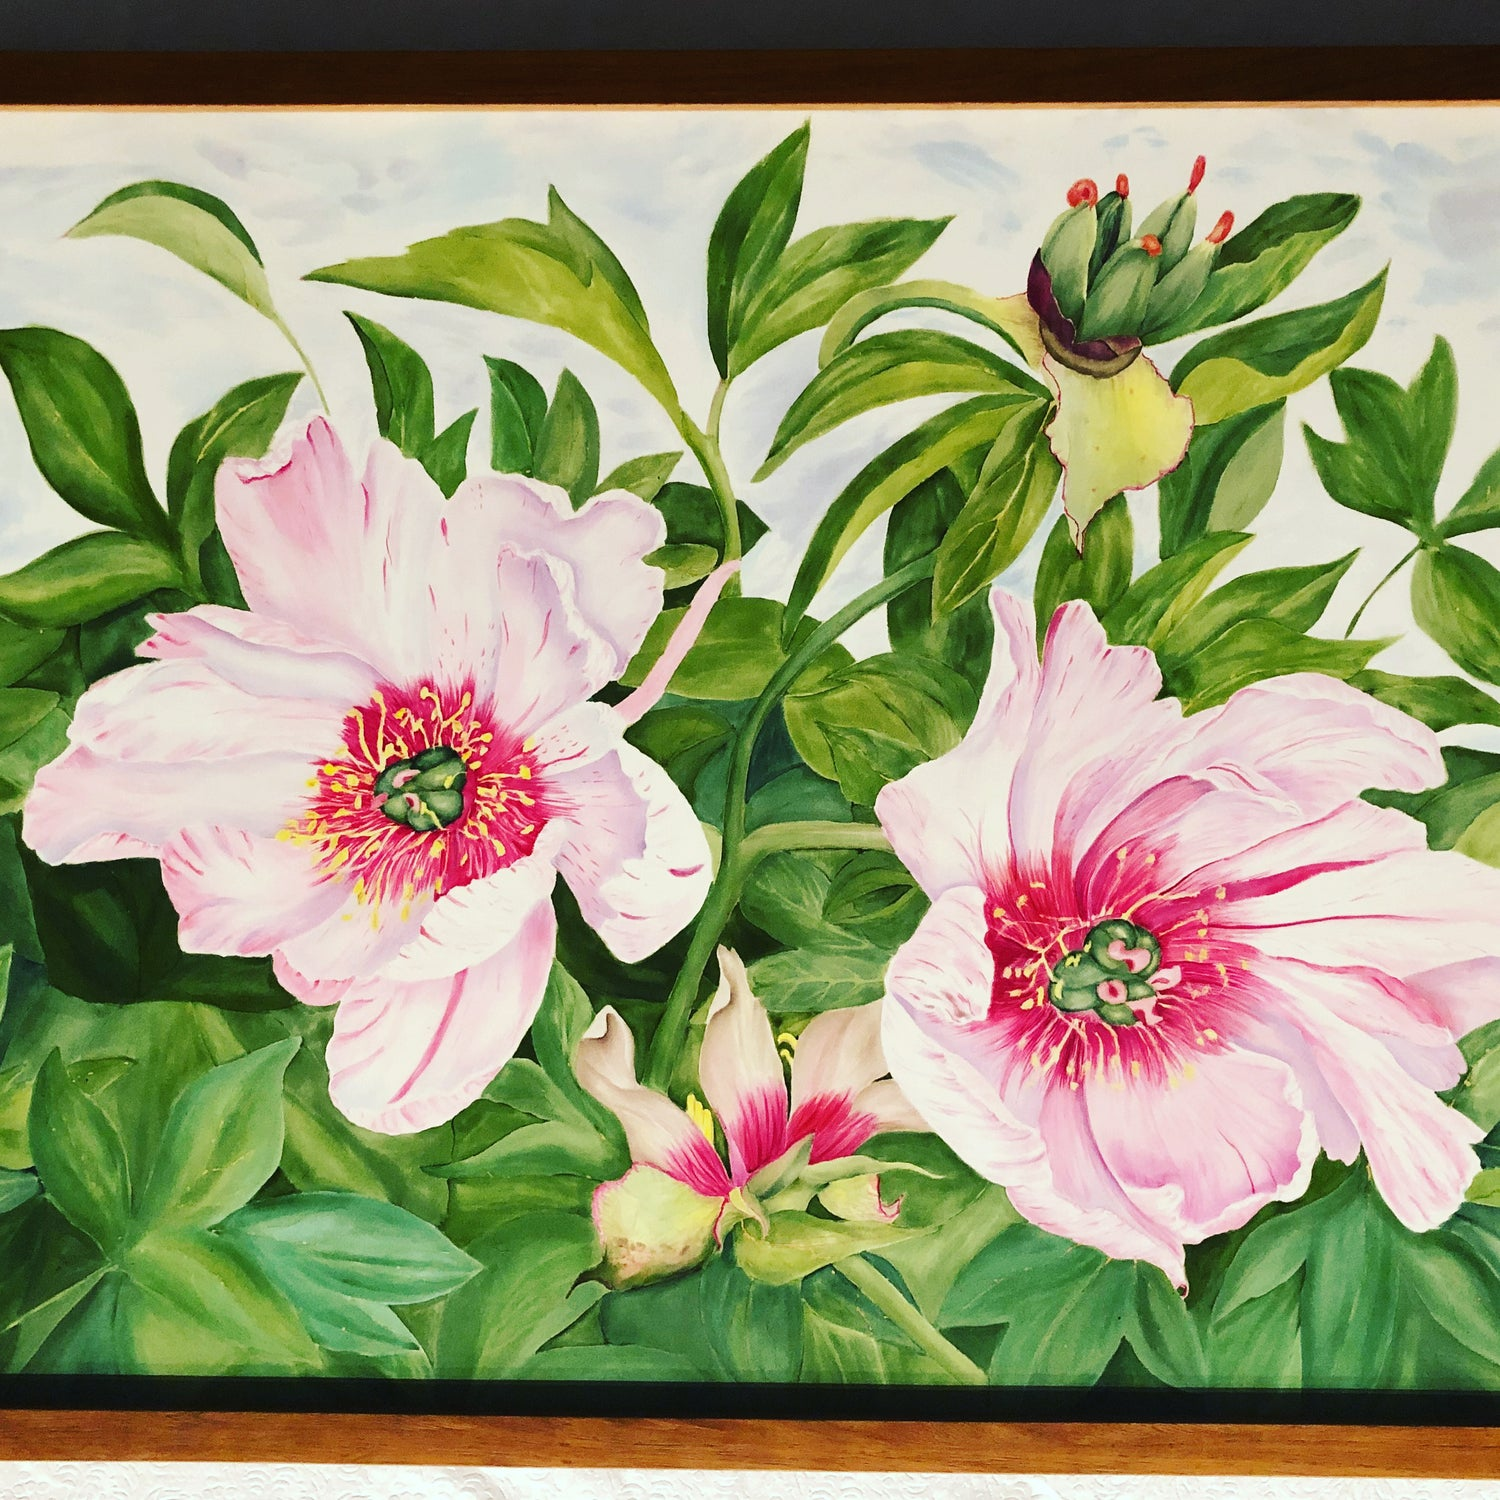 Image of Peony Pair with Carpels